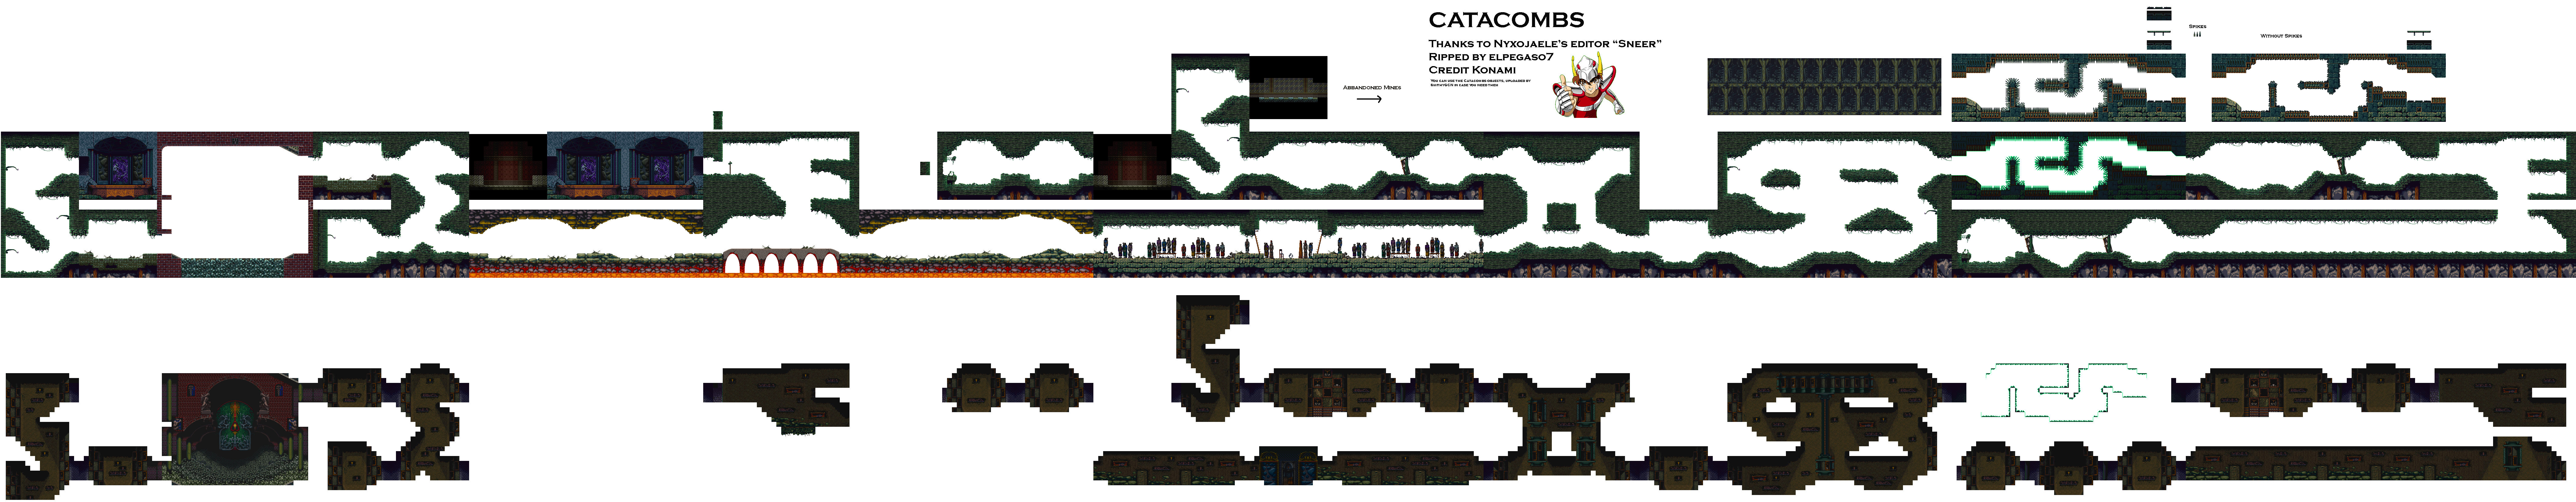 Catacombs Transparent Background